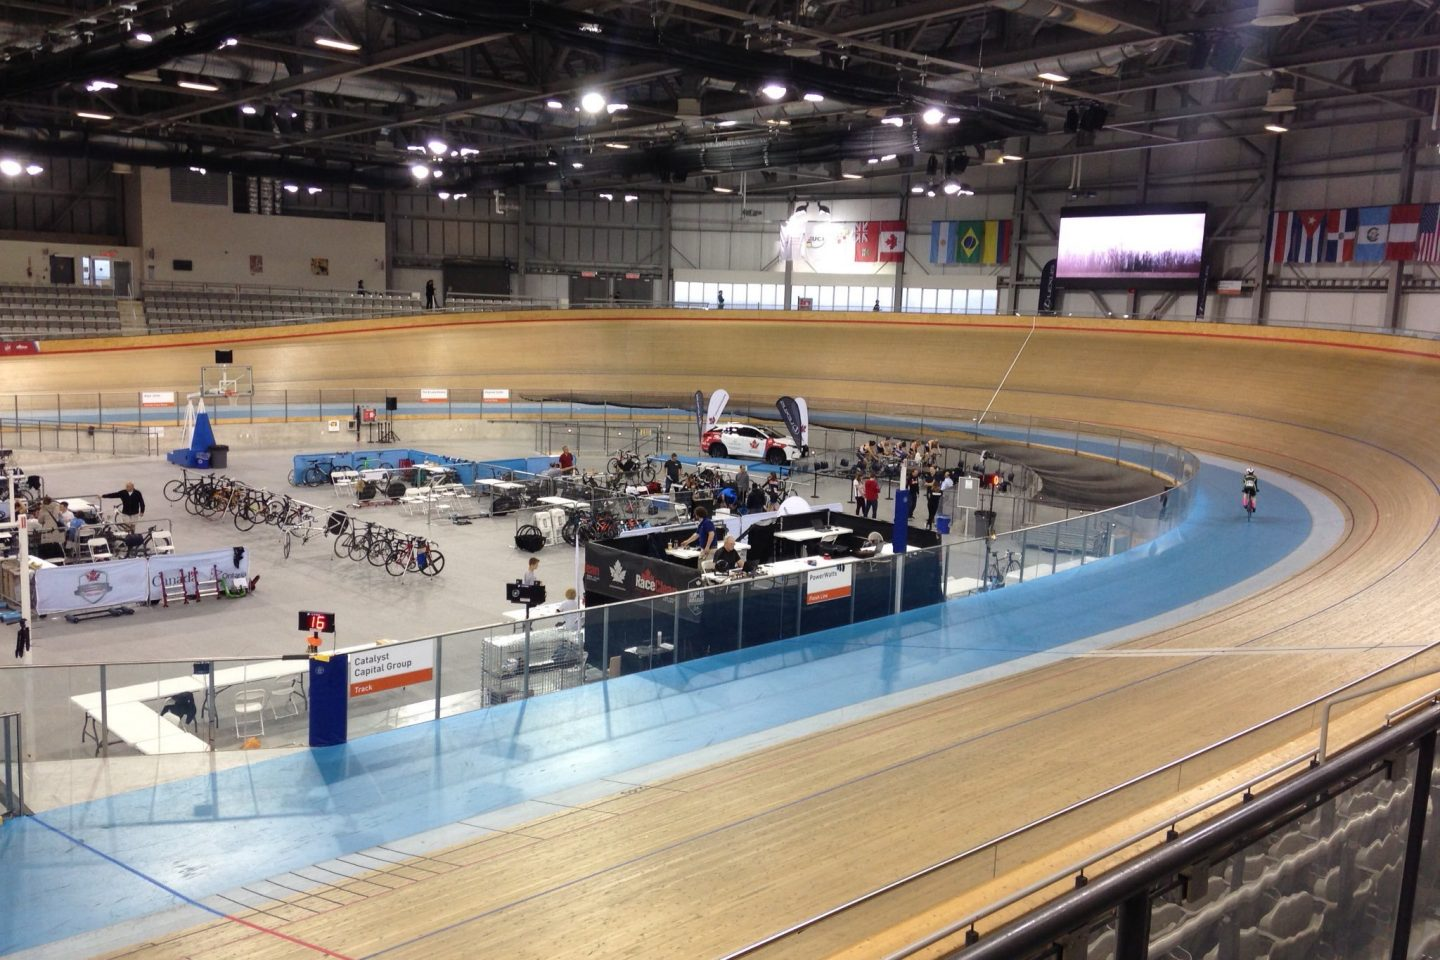 The Mattamy National Cycling Centre